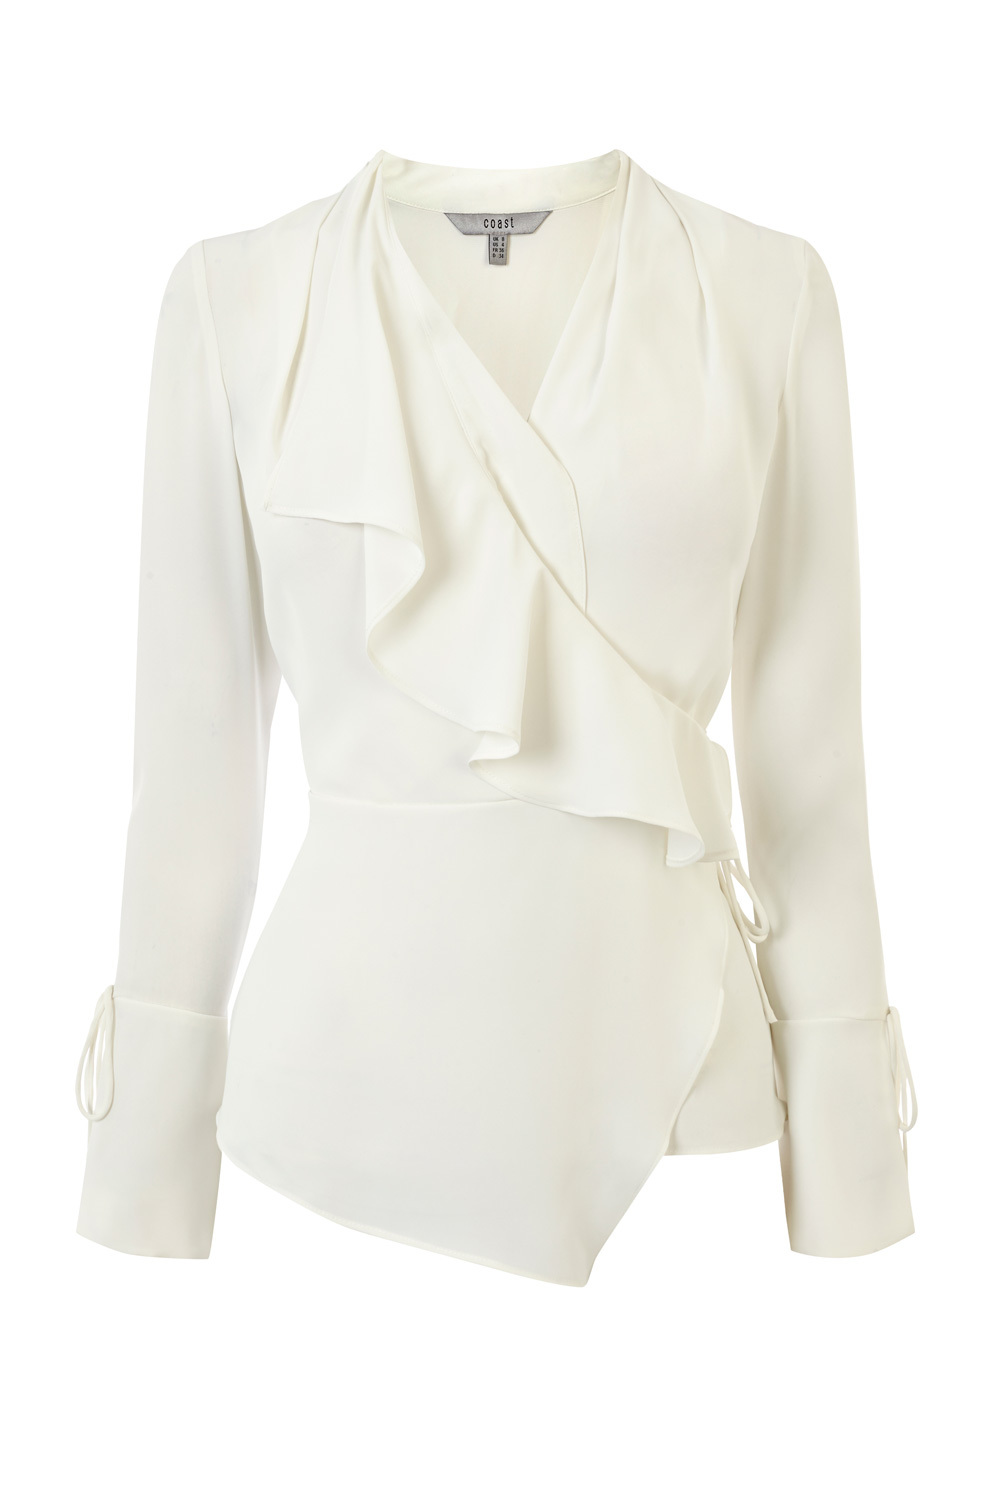 Sorrel Ruffle Blouse - neckline: v-neck; pattern: plain; style: blouse; predominant colour: white; occasions: evening; length: standard; fibres: polyester/polyamide - 100%; fit: body skimming; sleeve length: long sleeve; sleeve style: standard; texture group: sheer fabrics/chiffon/organza etc.; bust detail: bulky details at bust; pattern type: fabric; season: a/w 2016; wardrobe: event